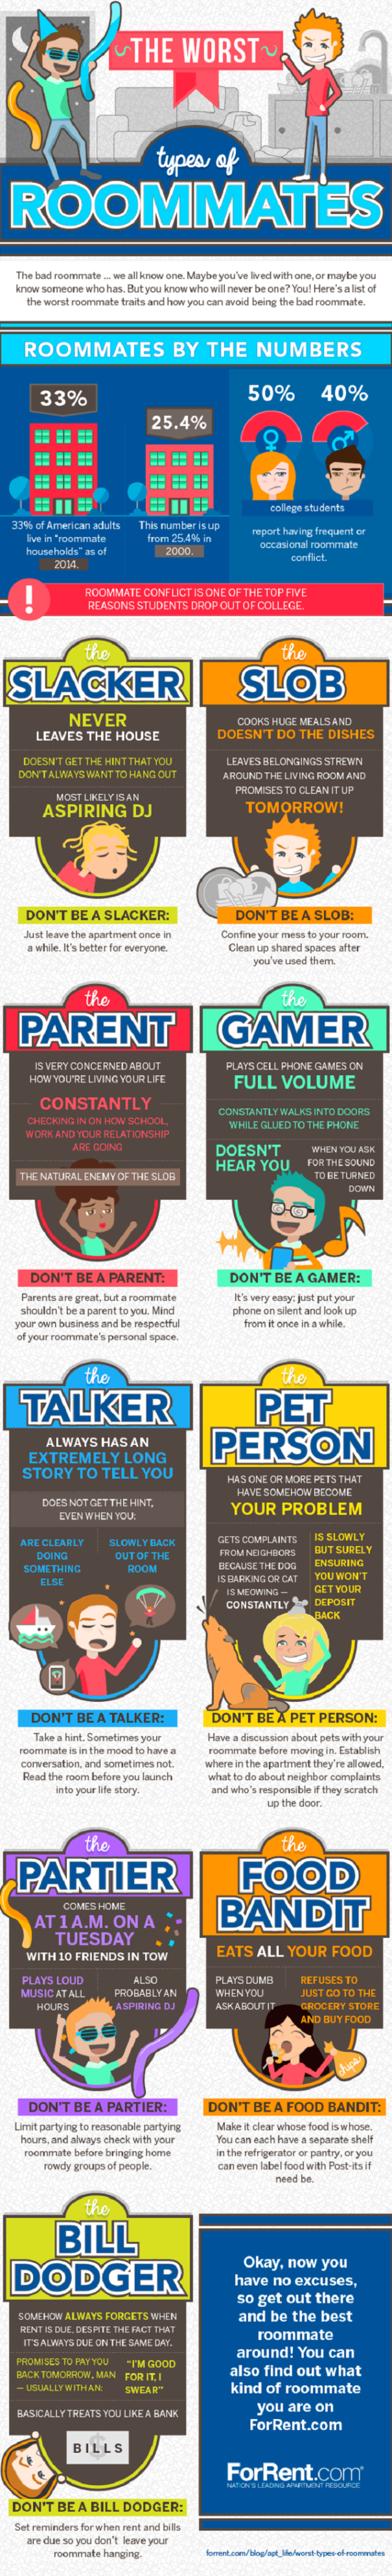 The Worst Types of Roommates Revealed